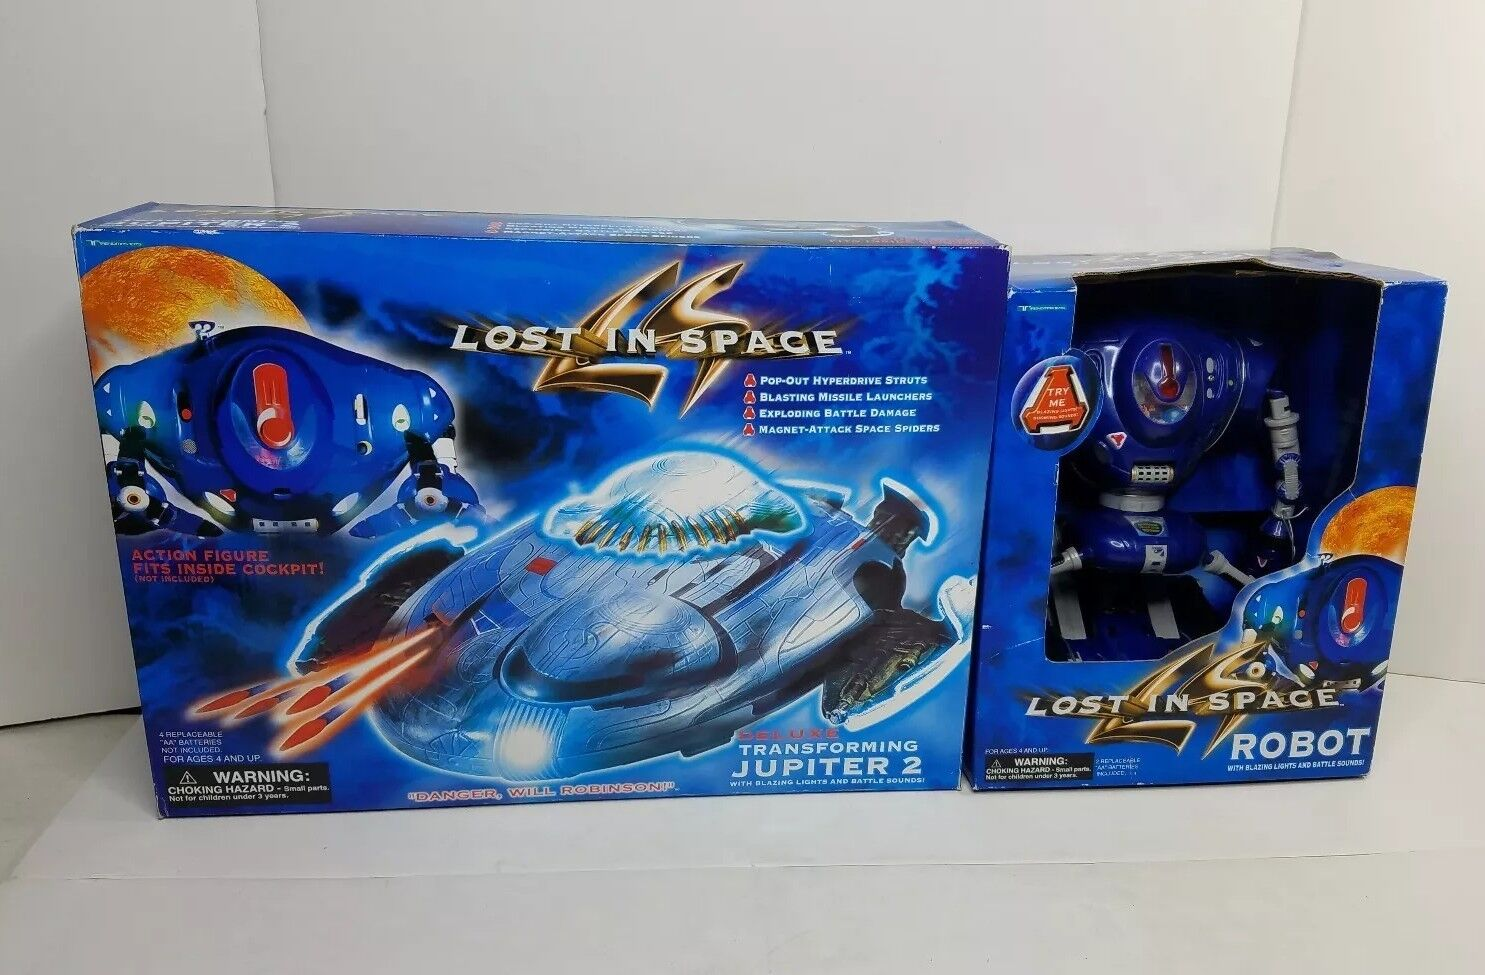 1997 Trendmasters LOST IN SPACE Deluxe Transforming Jupiter 2 movie spaceship II